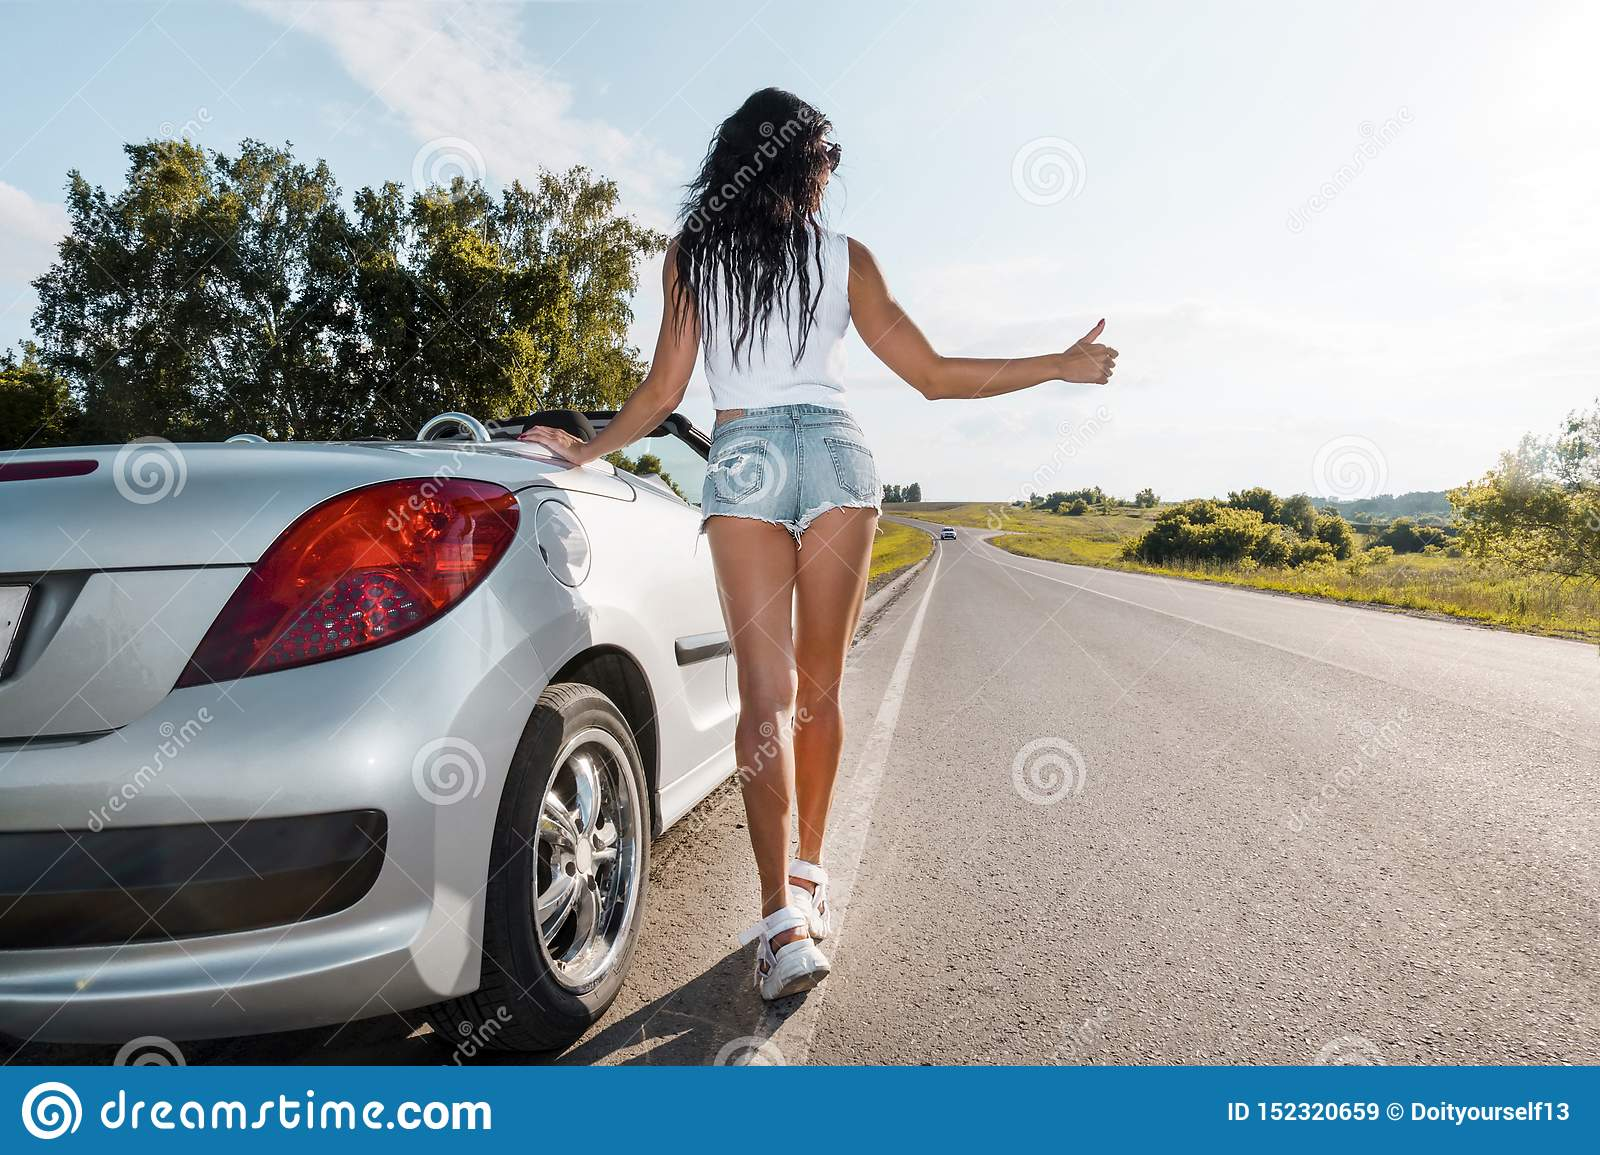 Iowa Gas Prices >> Sexy Woman Hitchhiking Stock Images - Download 19 Royalty Free Photos